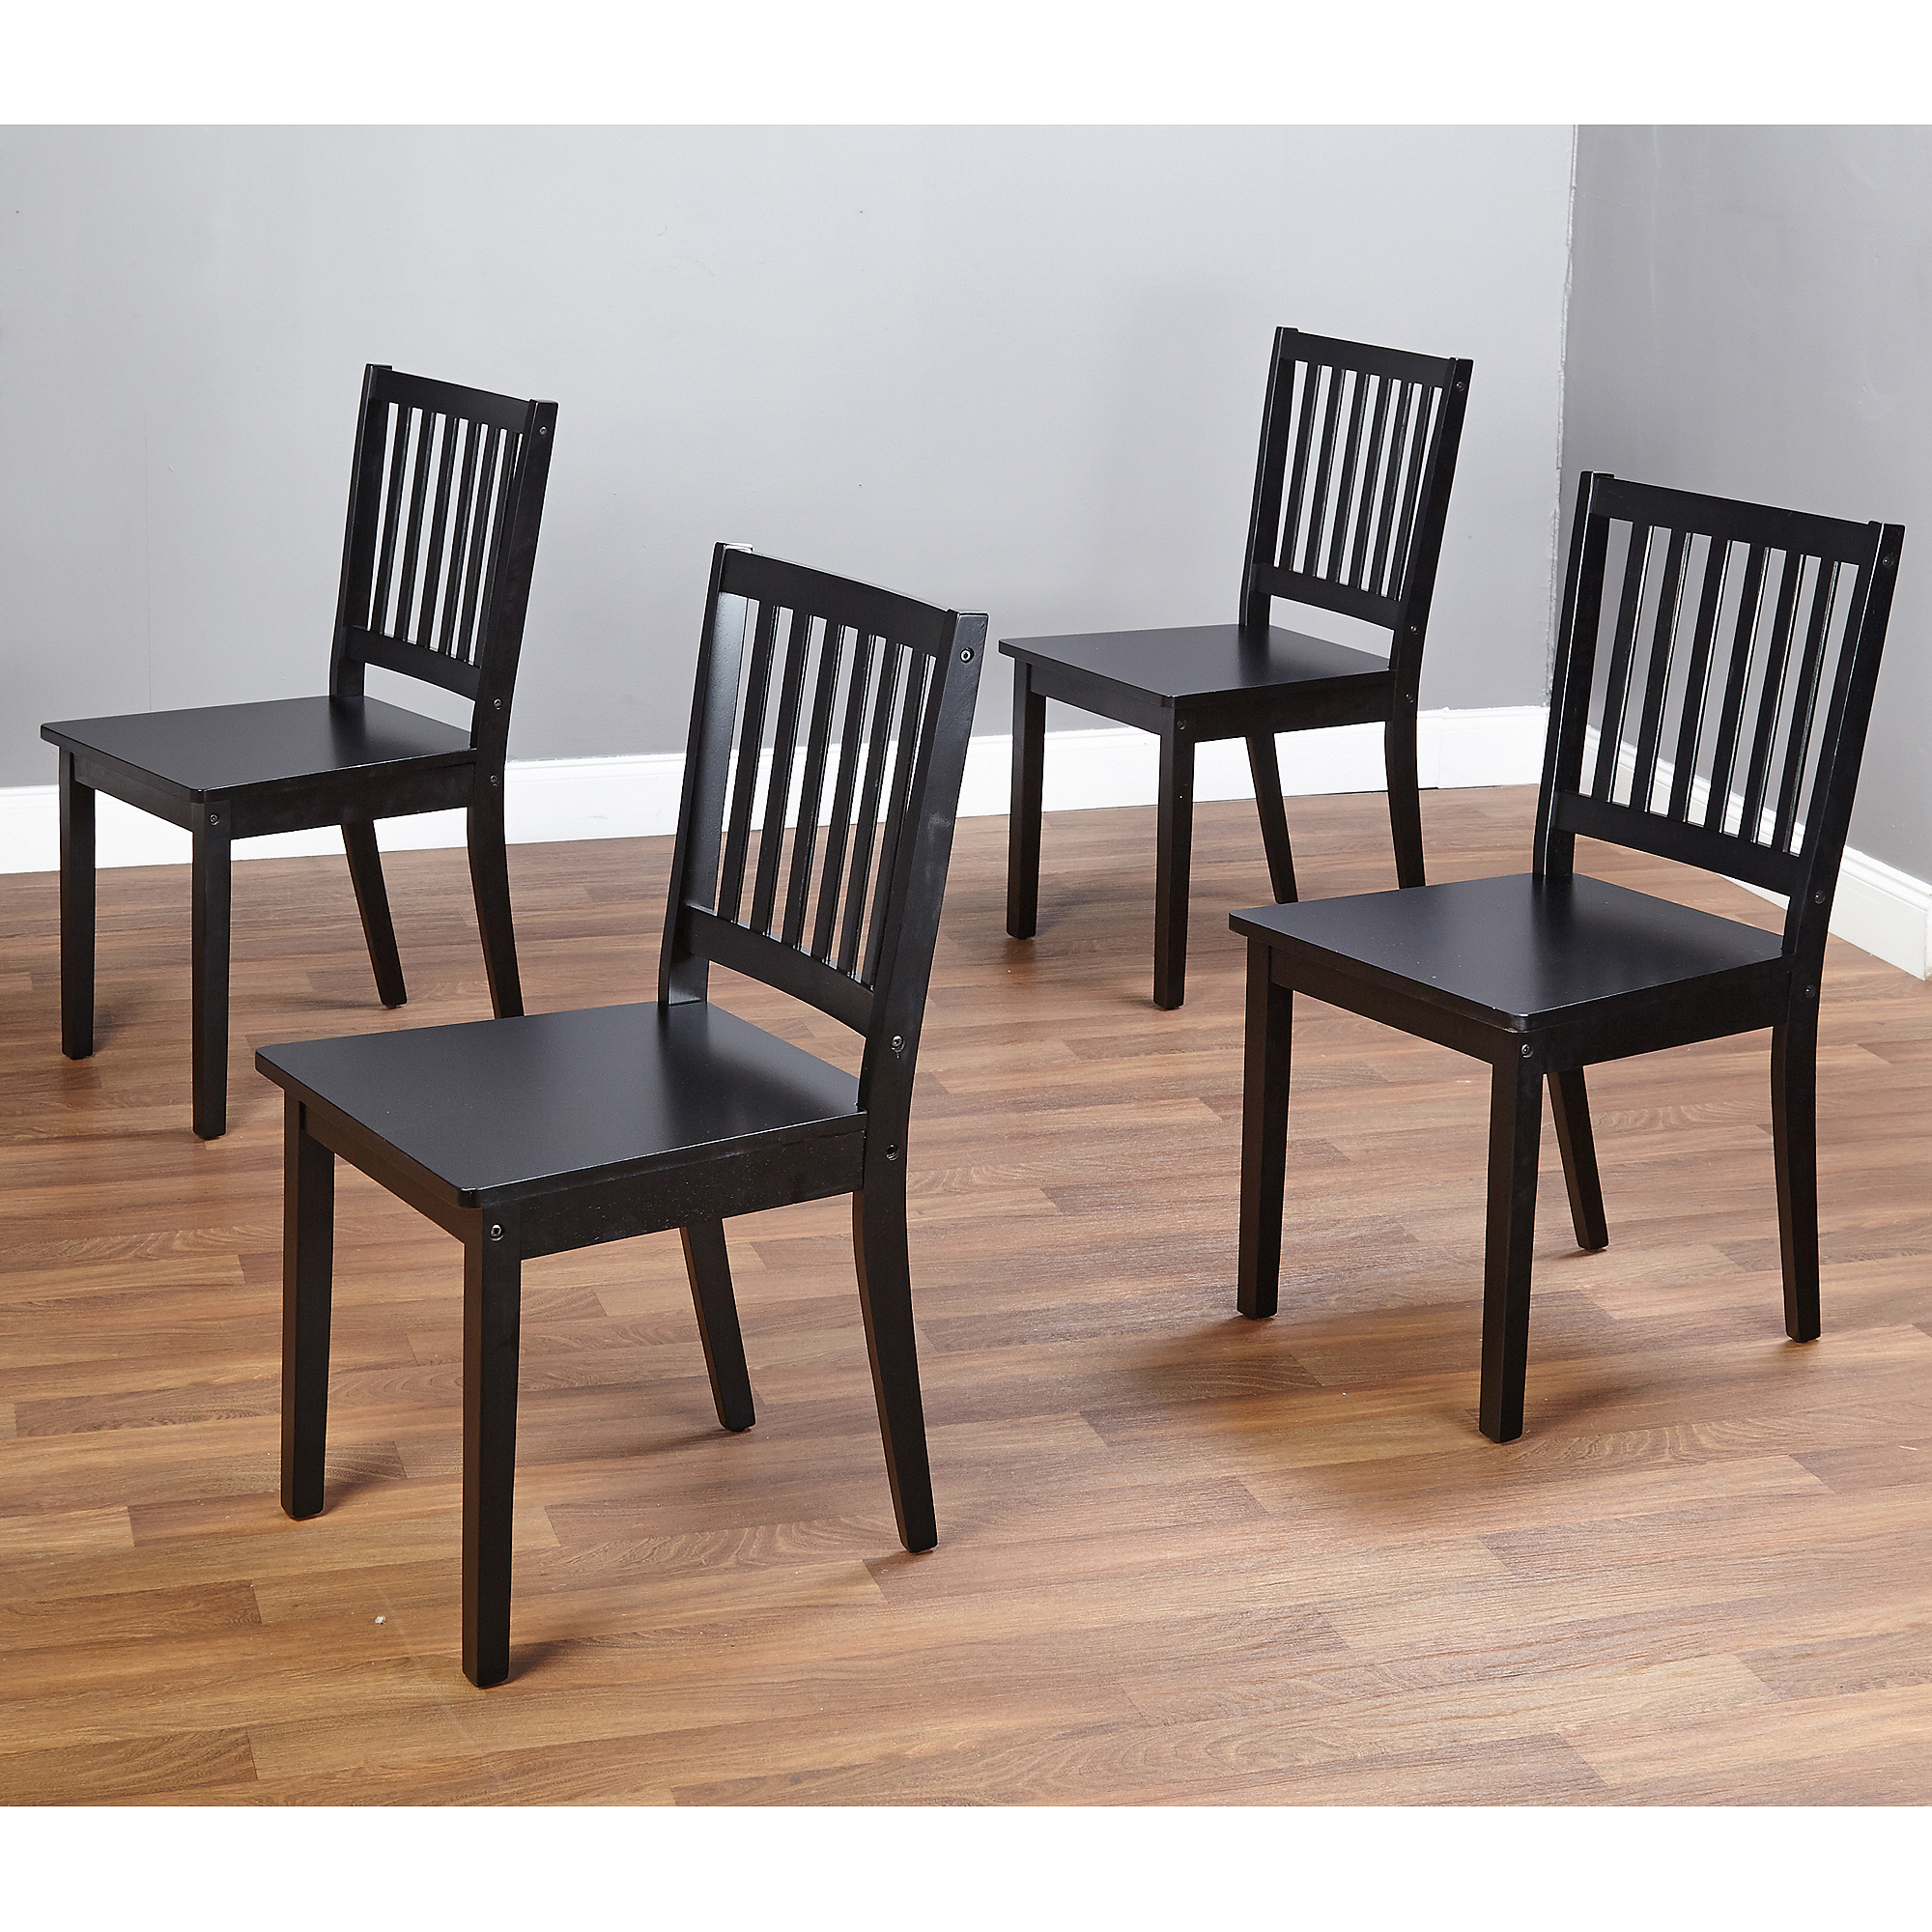 What is shaker style furniture Dining Room 10018blk4 Jadasinfo Shaker Dining Chairs Set Of 4 Black Ebay